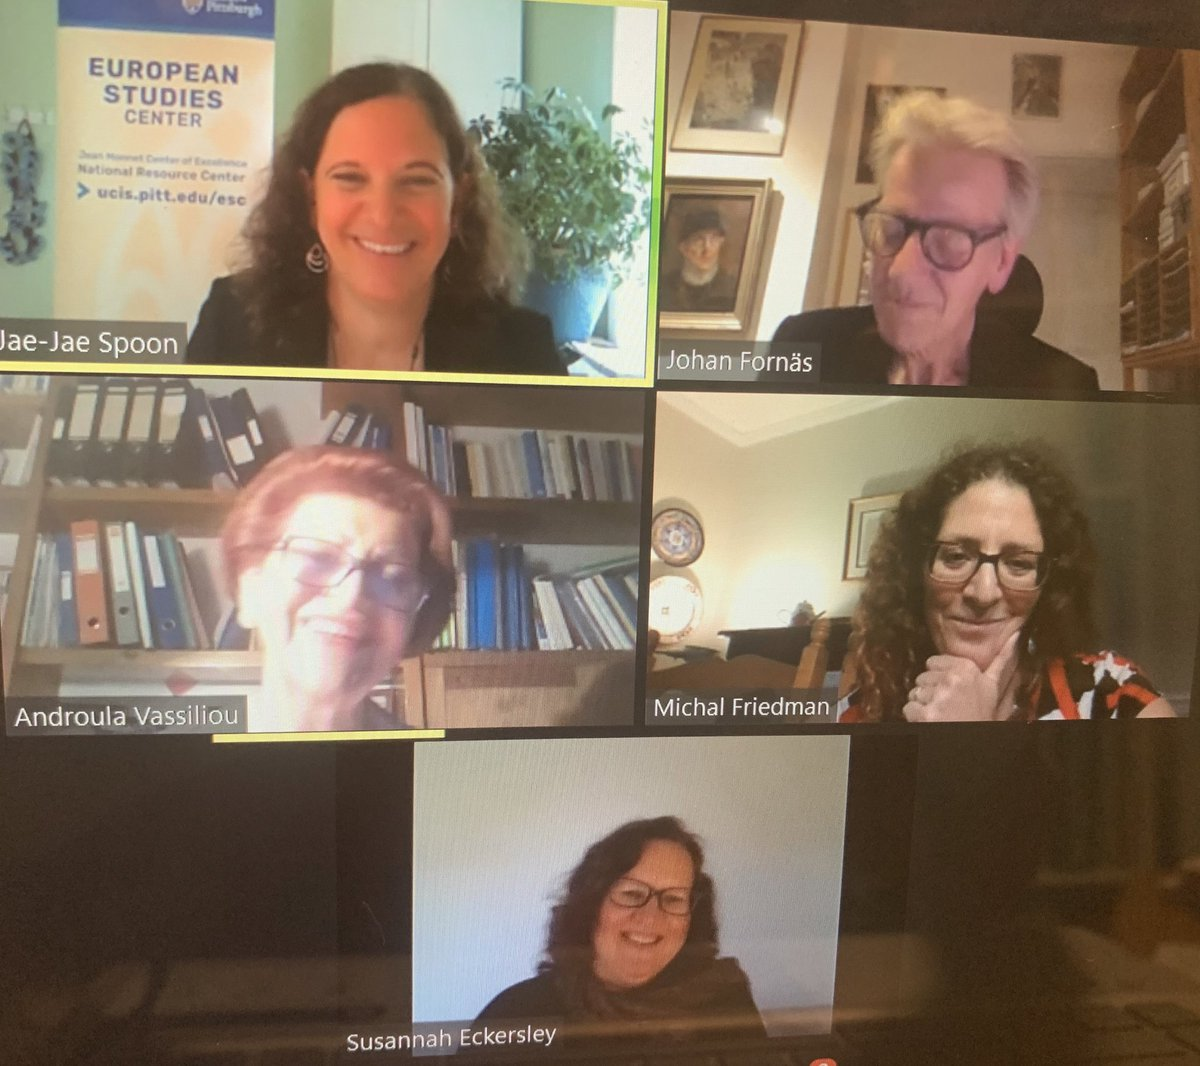 """@EuceEsc @VassiliouEU @johanfornas @MuseumsEck @MichalFriedman7 @JaeJaeSpoon @sacsncl @MuseumEck The 1st #PittCoE  on """"United in Diversity"""" was excellent. Thanks & appreciation to @EuceEsc  , distinguished 🇪🇺 experts @VassiliouEU @EU_Commission @johanfornas @MuseumEck @MichalFriedman7 & moderator. @JaeJaeSpoon . @MEUCEFIU  is looking forward to the next @EuceEsc #PittCoE https://t.co/i6ATfEL4Ku"""